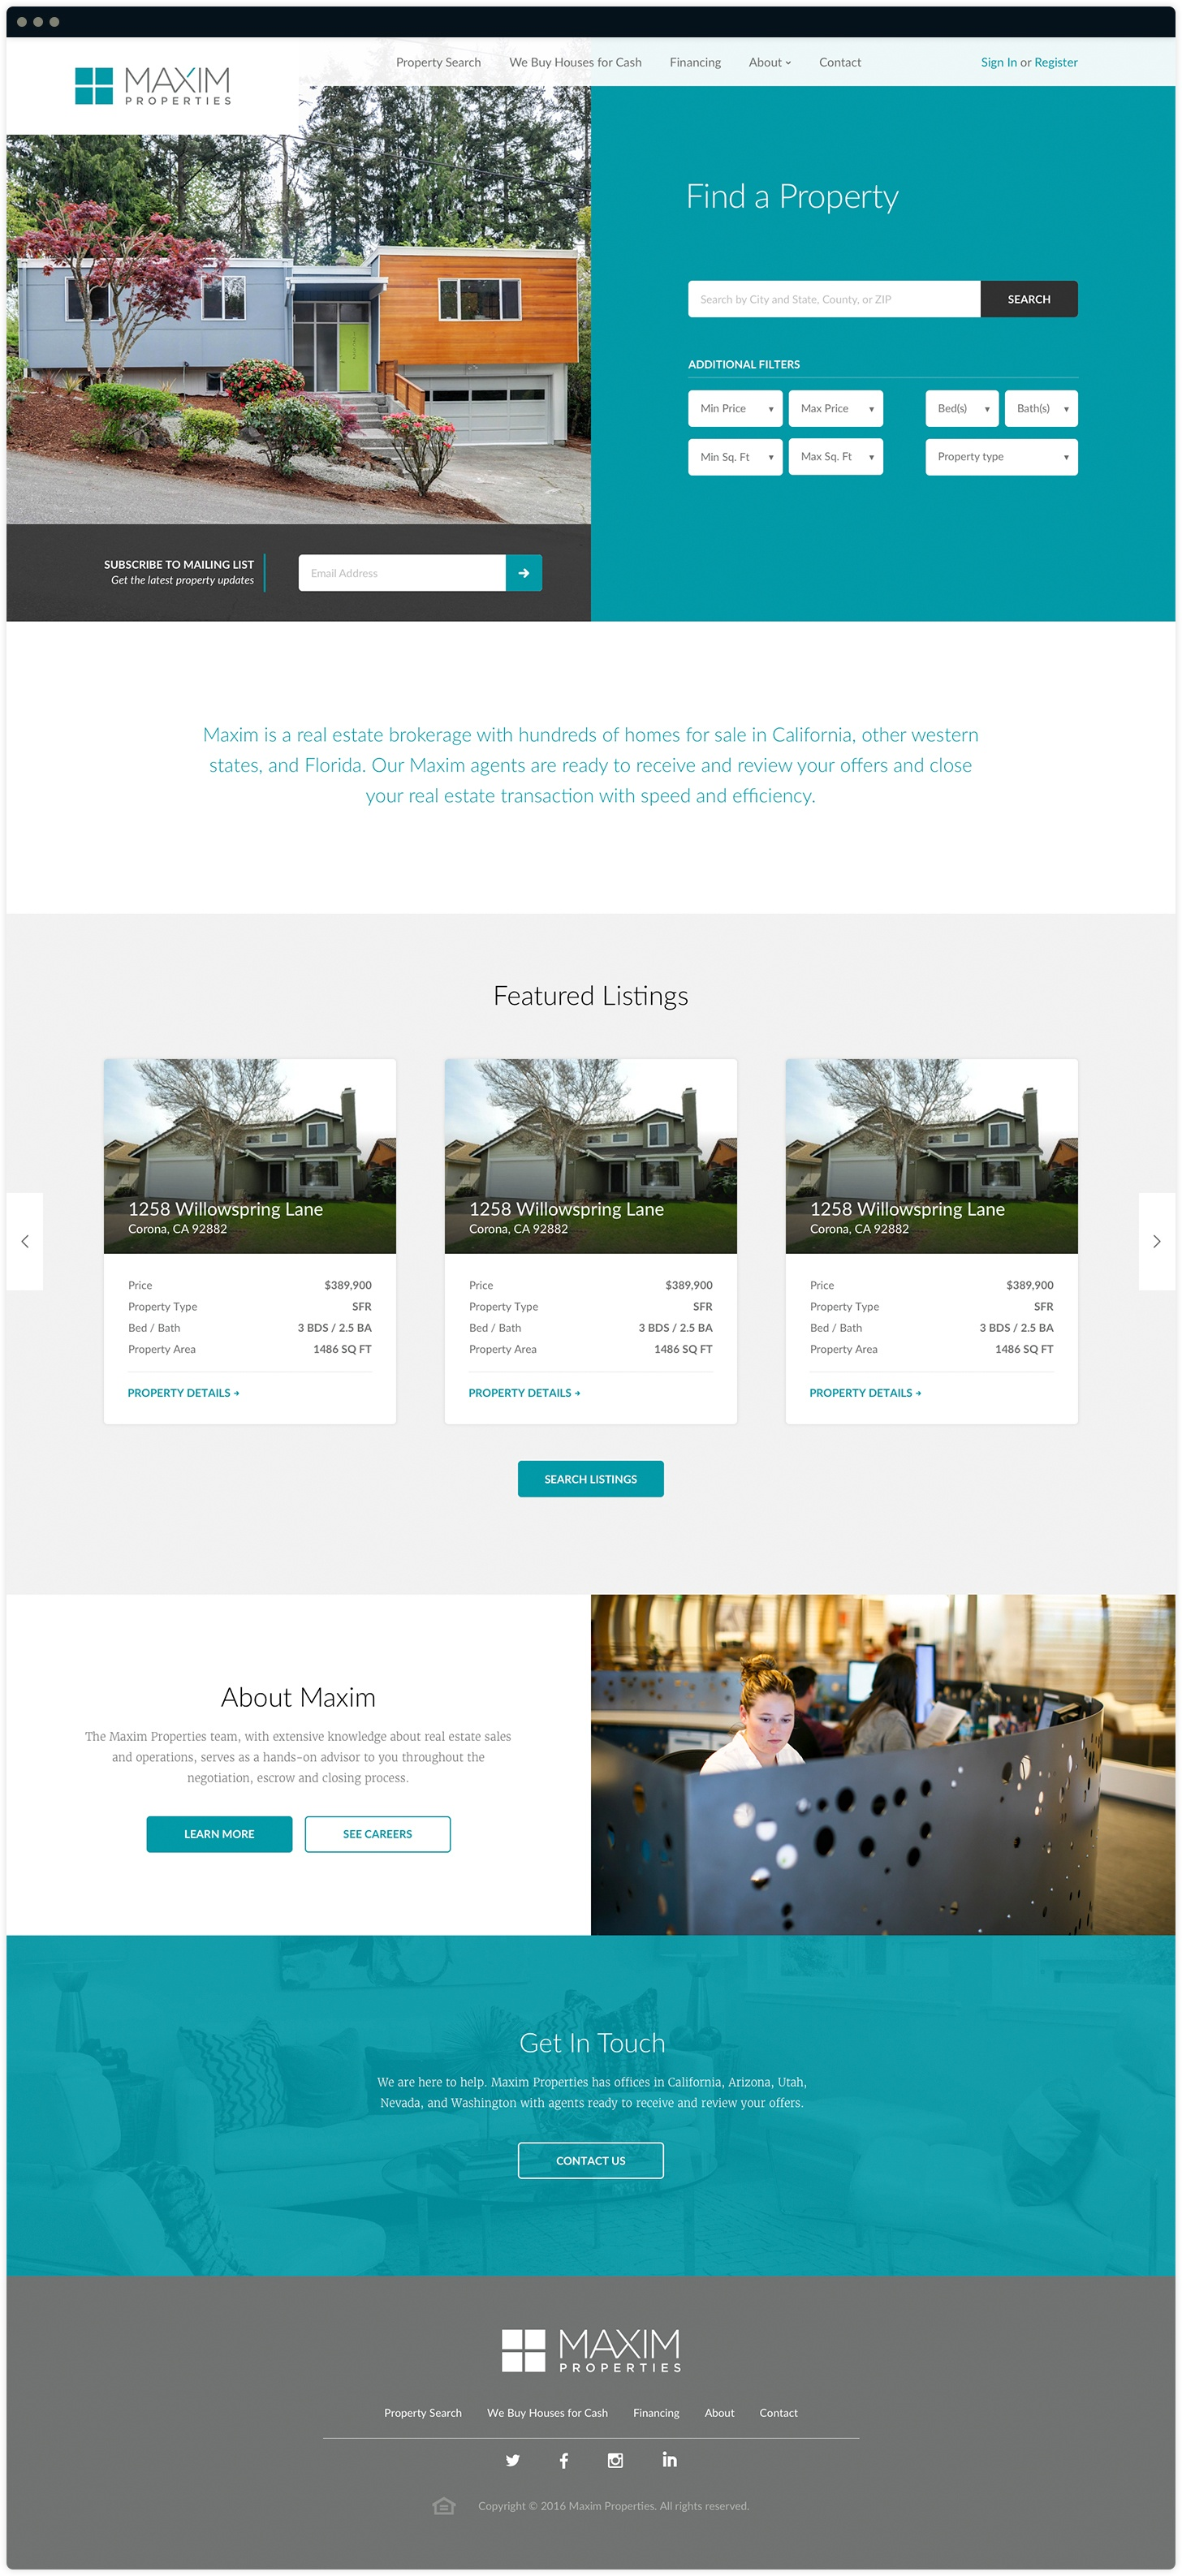 Maxim Properties Homepage Design by Salted Stone